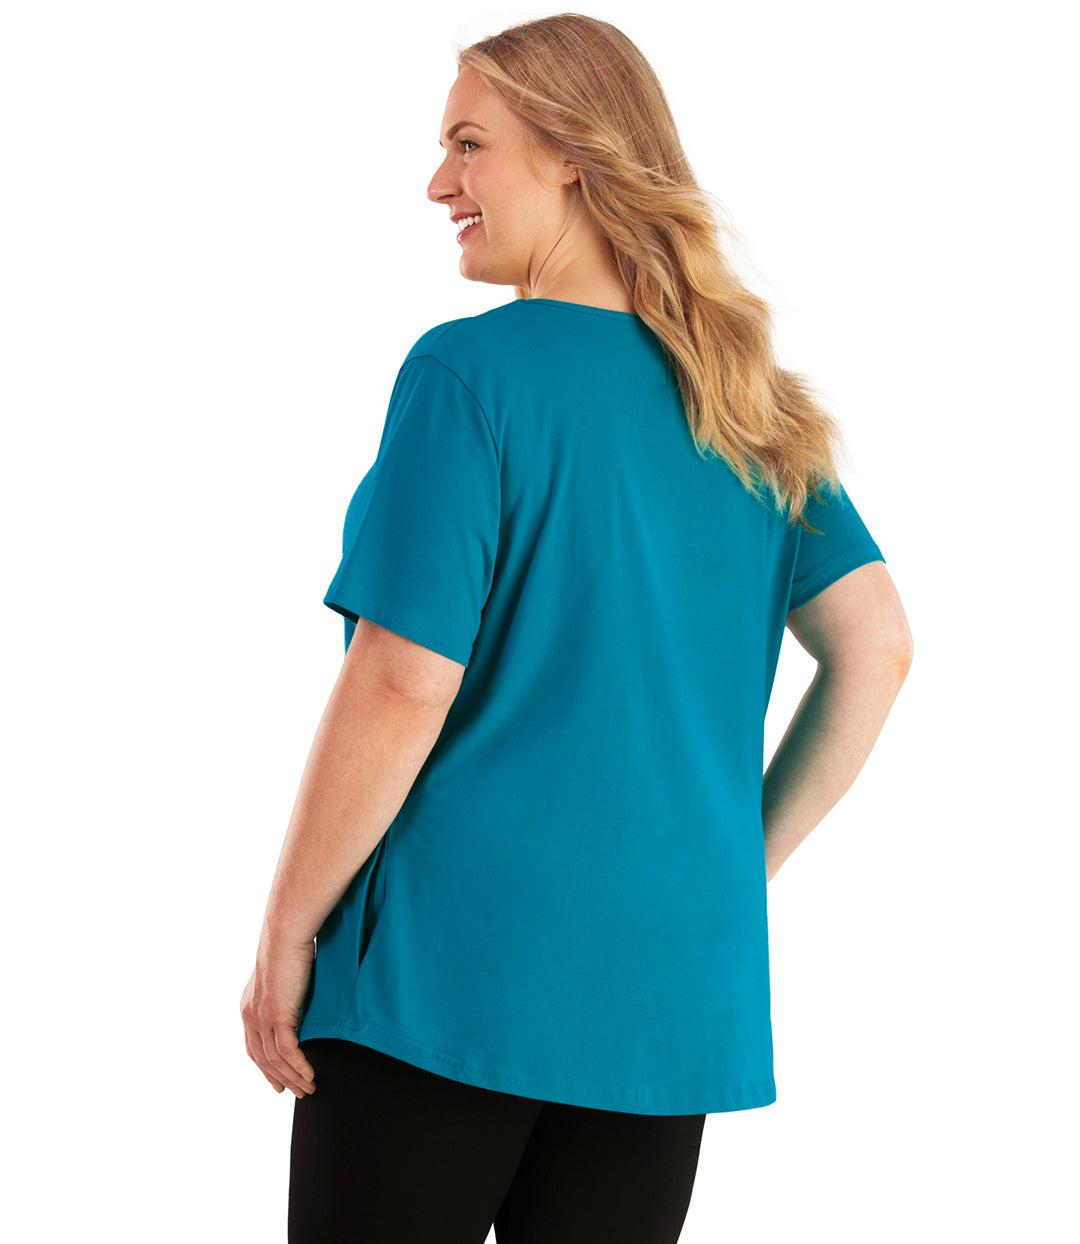 Stretch Naturals Lite Pocket Tee-Plus Size Activewear & Athletic Clothing-Hop Wo Trading Co Ltd-XL-TEAL-JunoActive